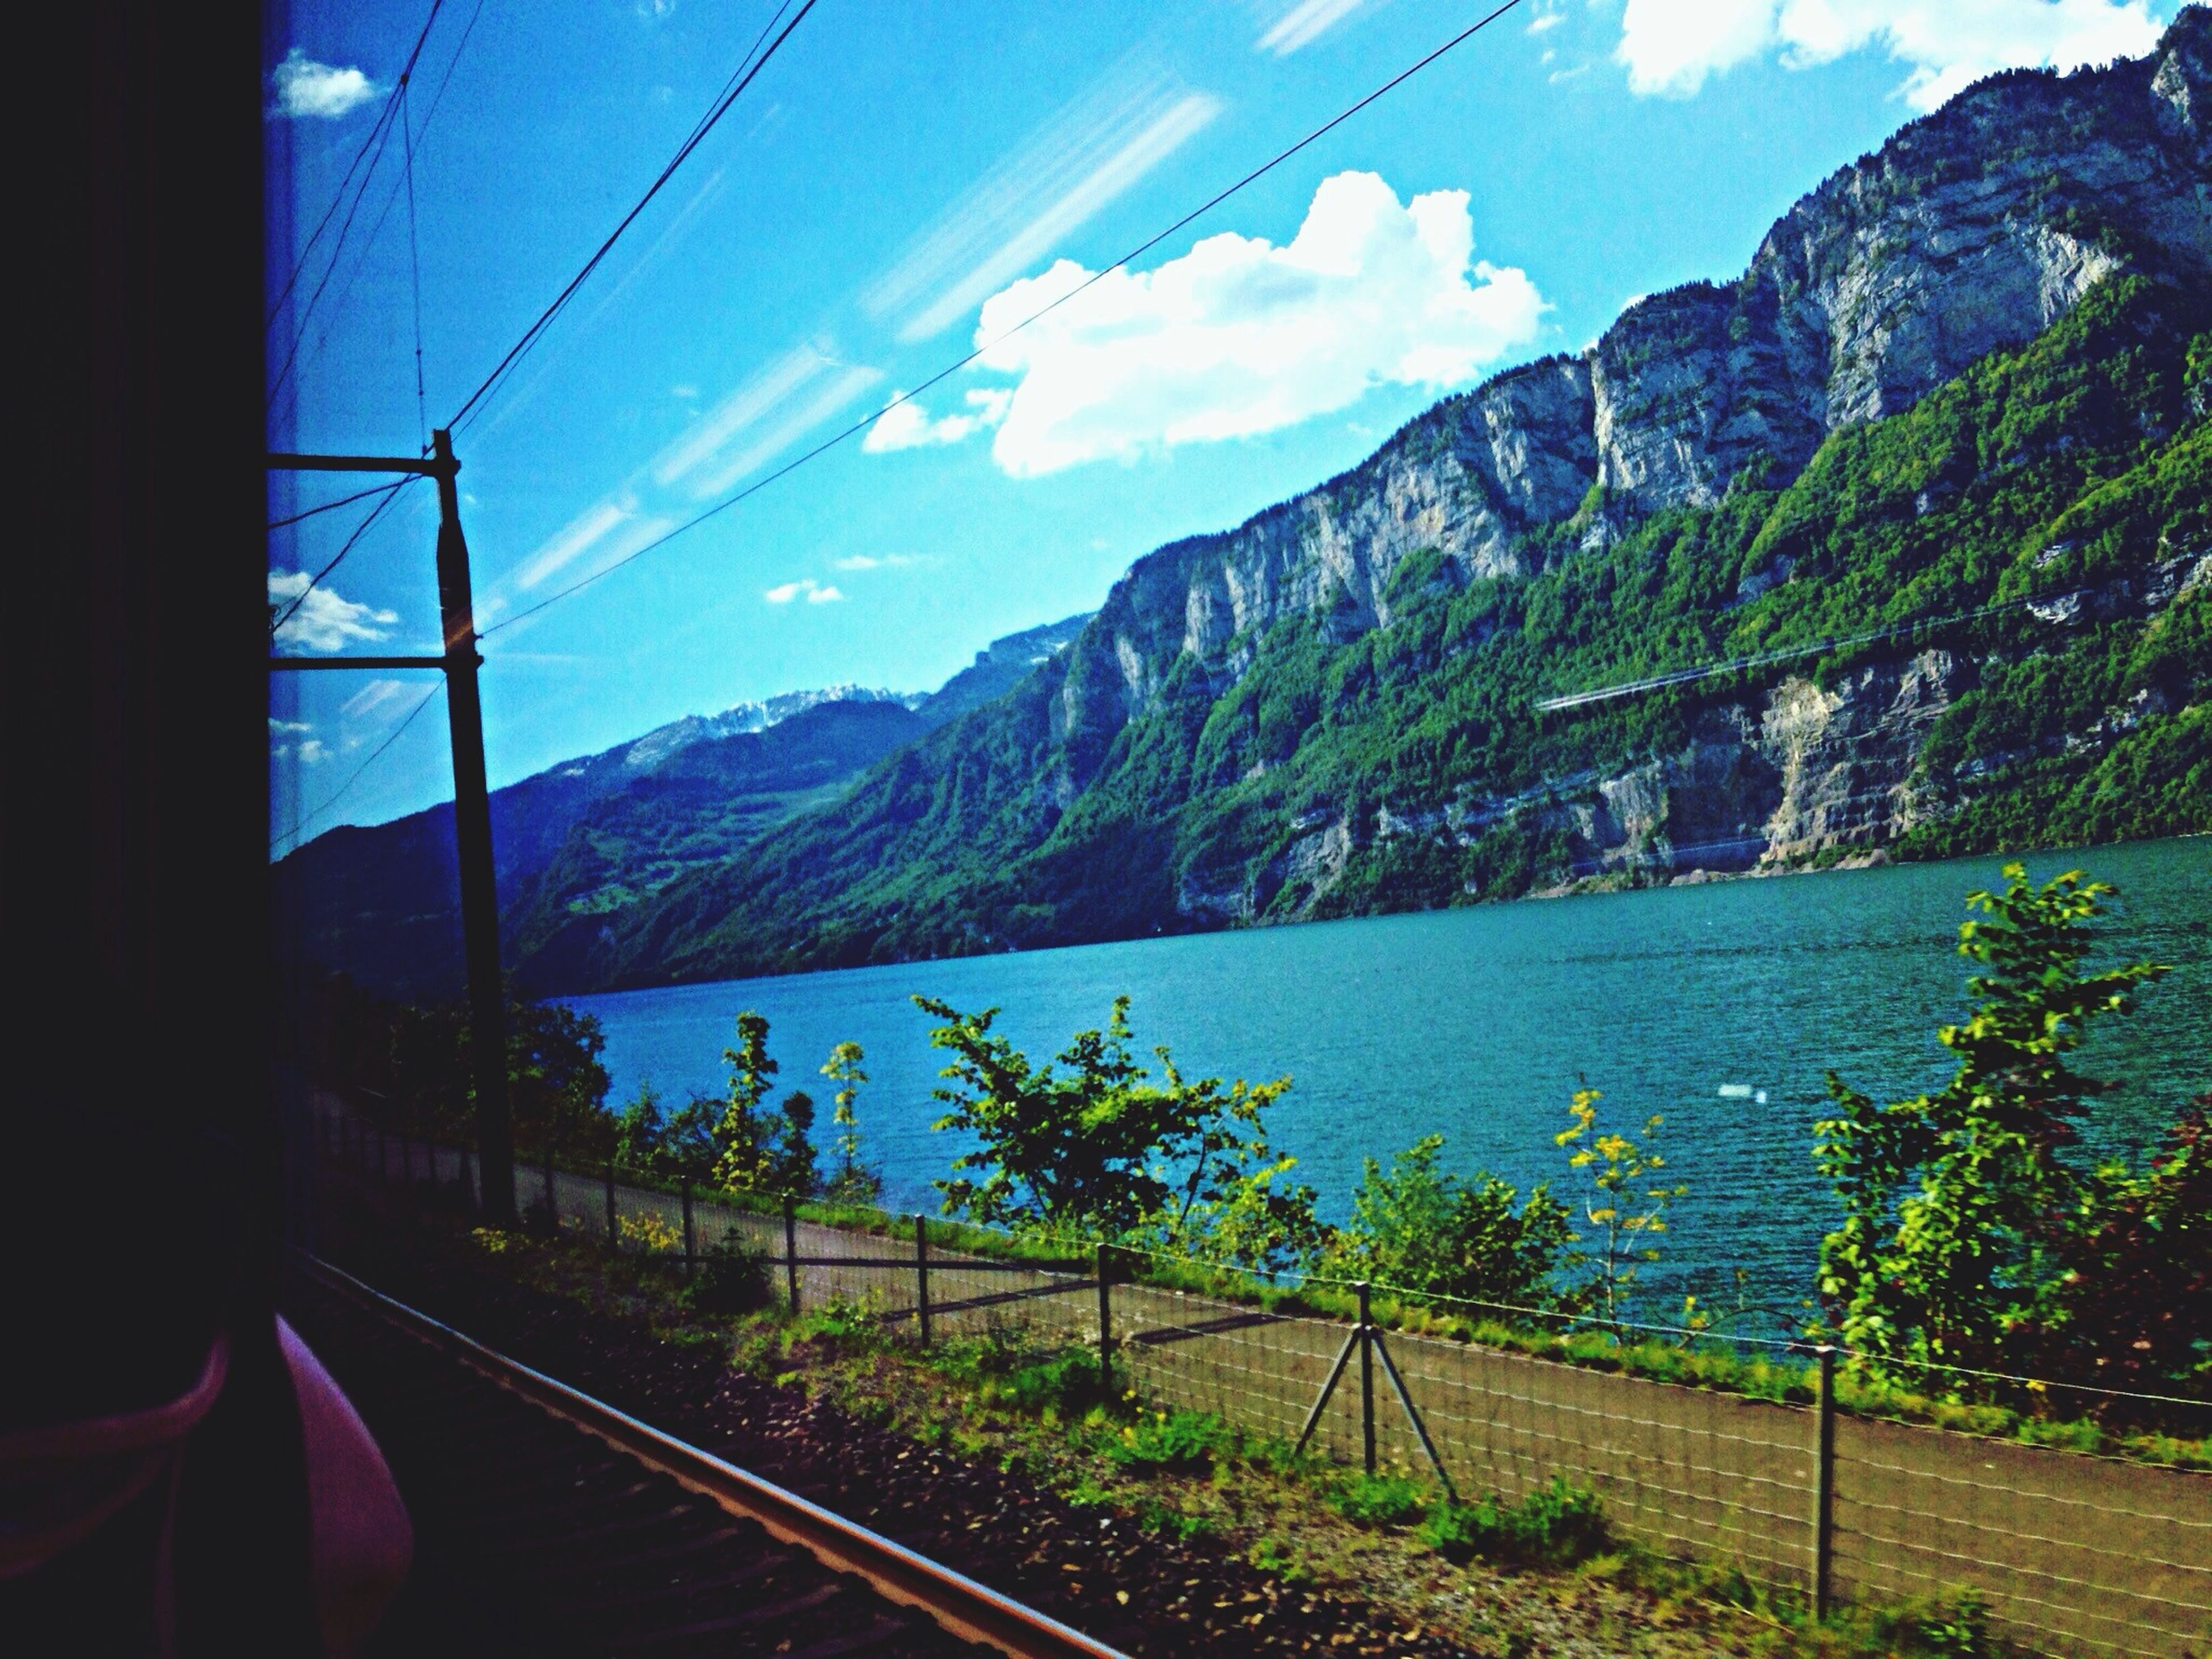 mountain, power line, sky, transportation, mountain range, railroad track, tranquility, tranquil scene, connection, electricity pylon, cable, scenics, landscape, nature, beauty in nature, water, rail transportation, electricity, blue, power supply